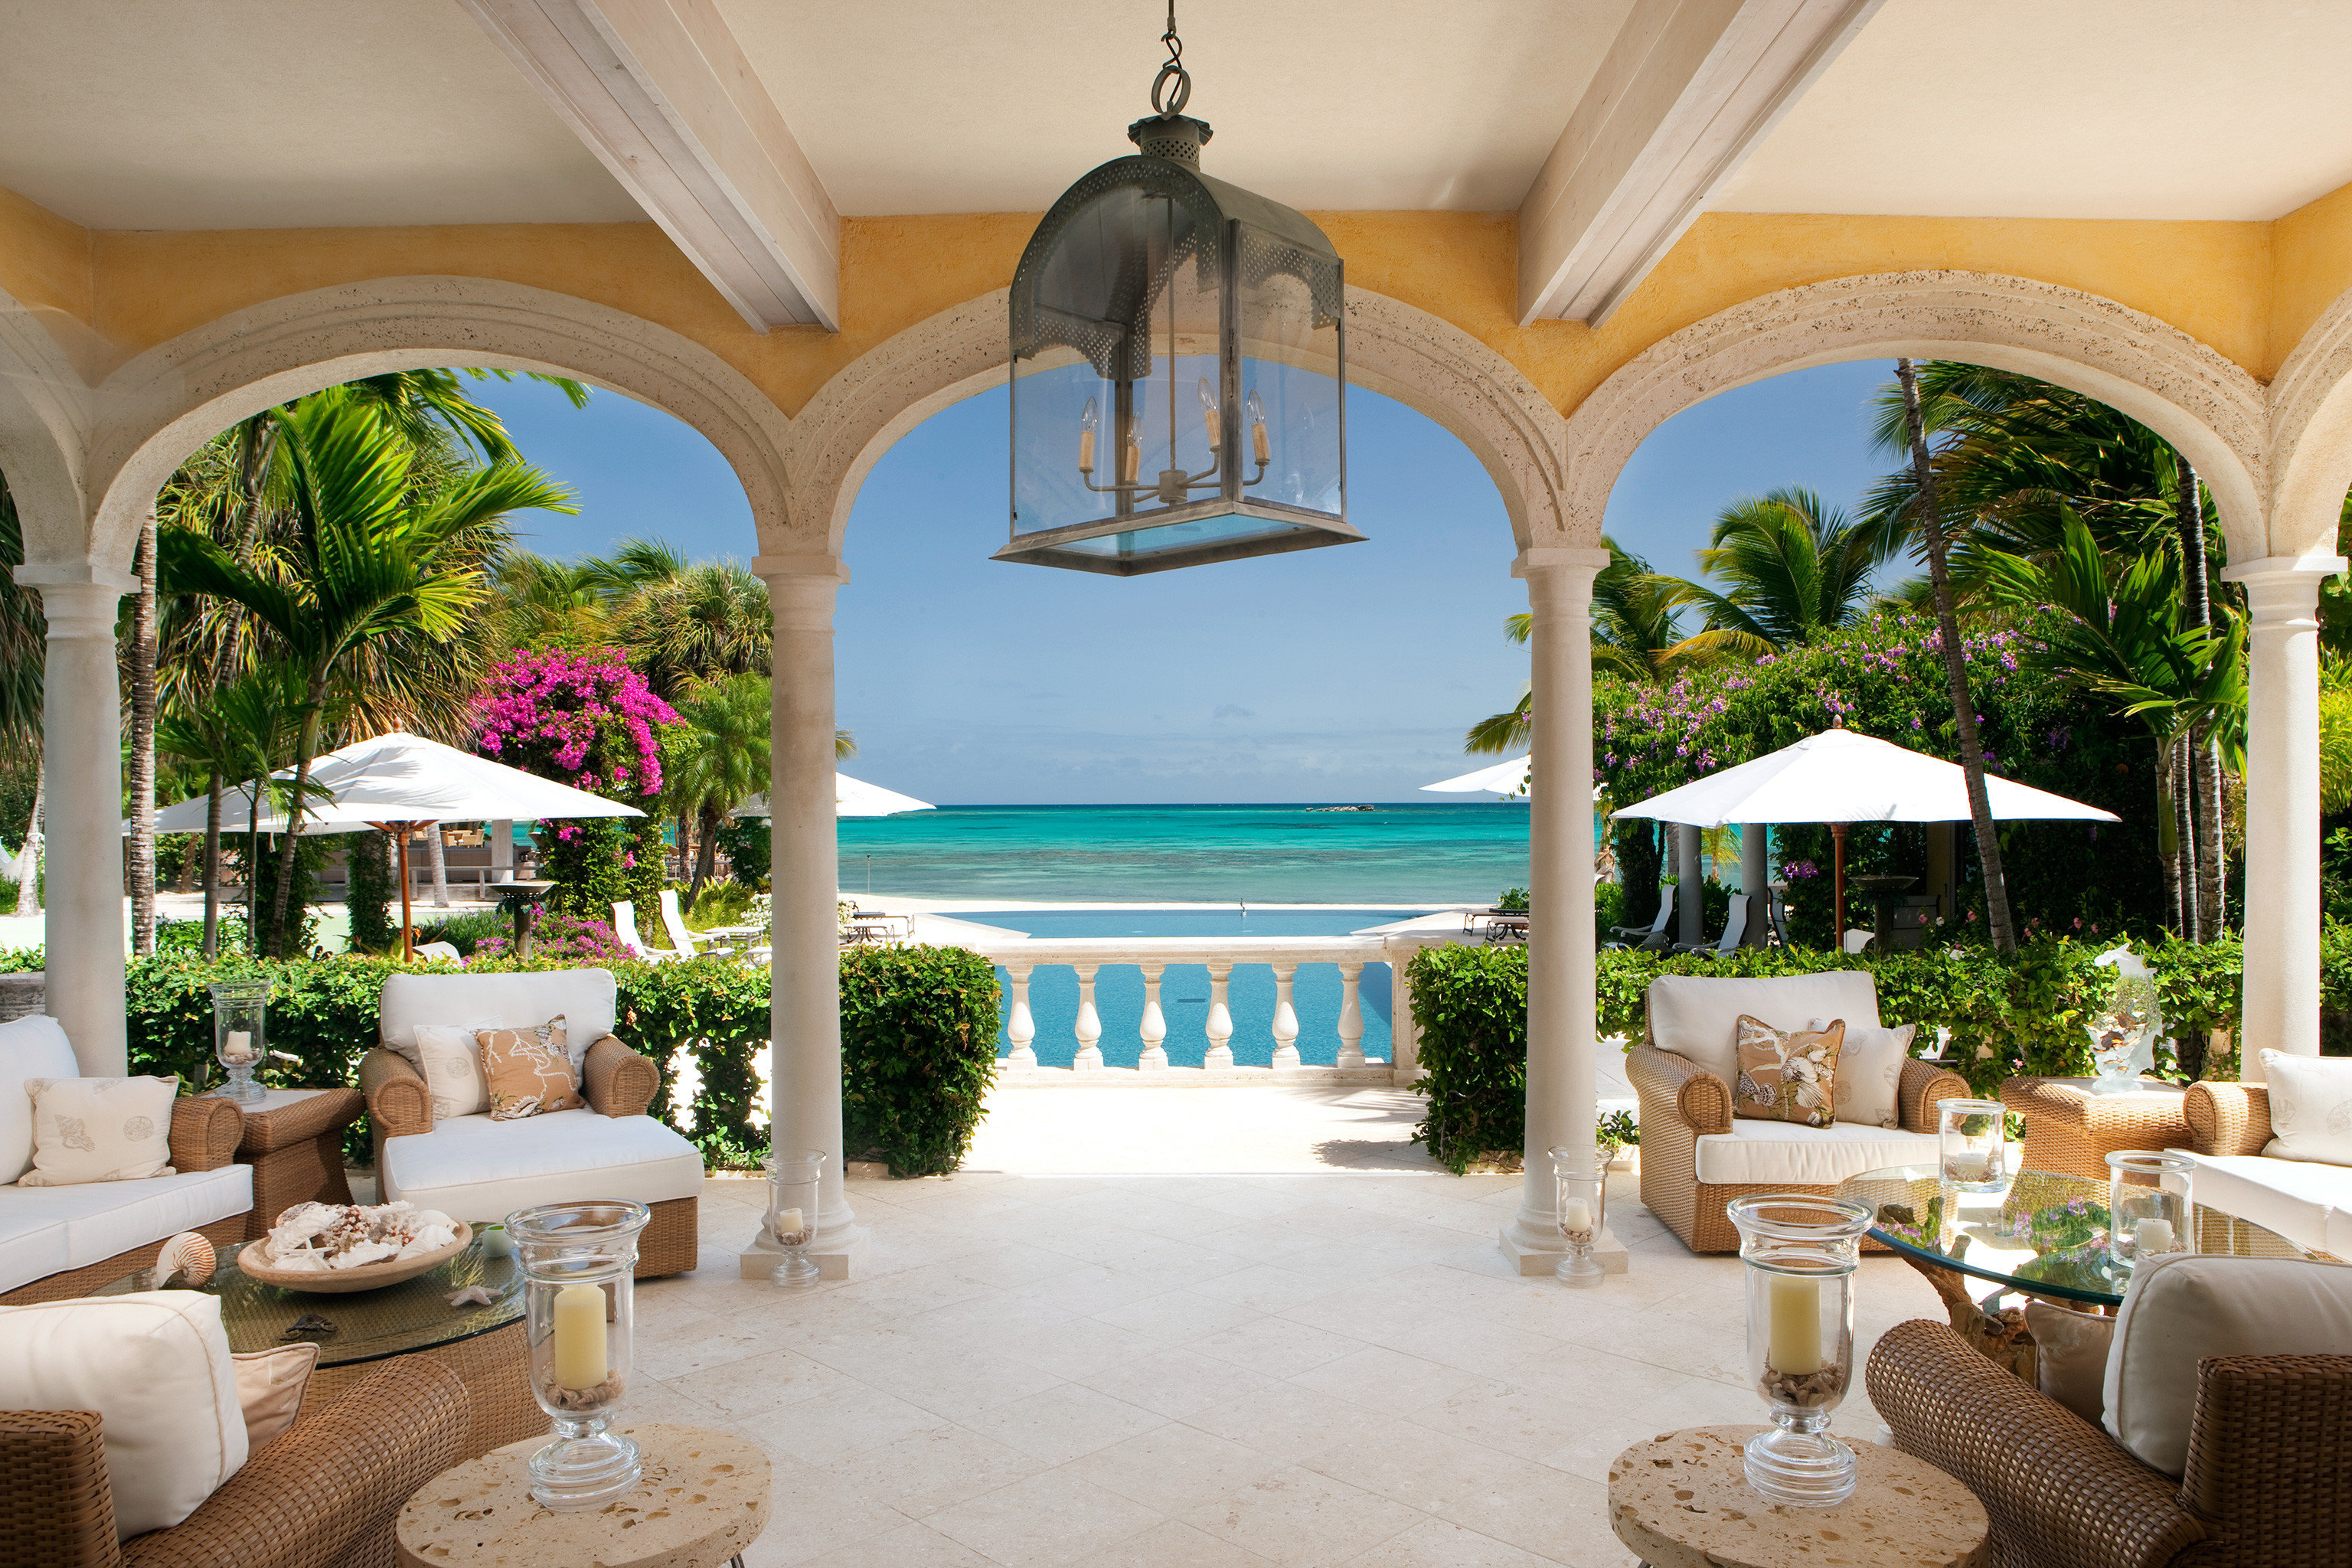 All-inclusive All-Inclusive Resorts Beach Beachfront Courtyard Hotels Island Lounge Luxury Patio Romantic Hotels Scenic views Suite Waterfront property Resort Villa mansion home hacienda palace caribbean living room restaurant colonnade